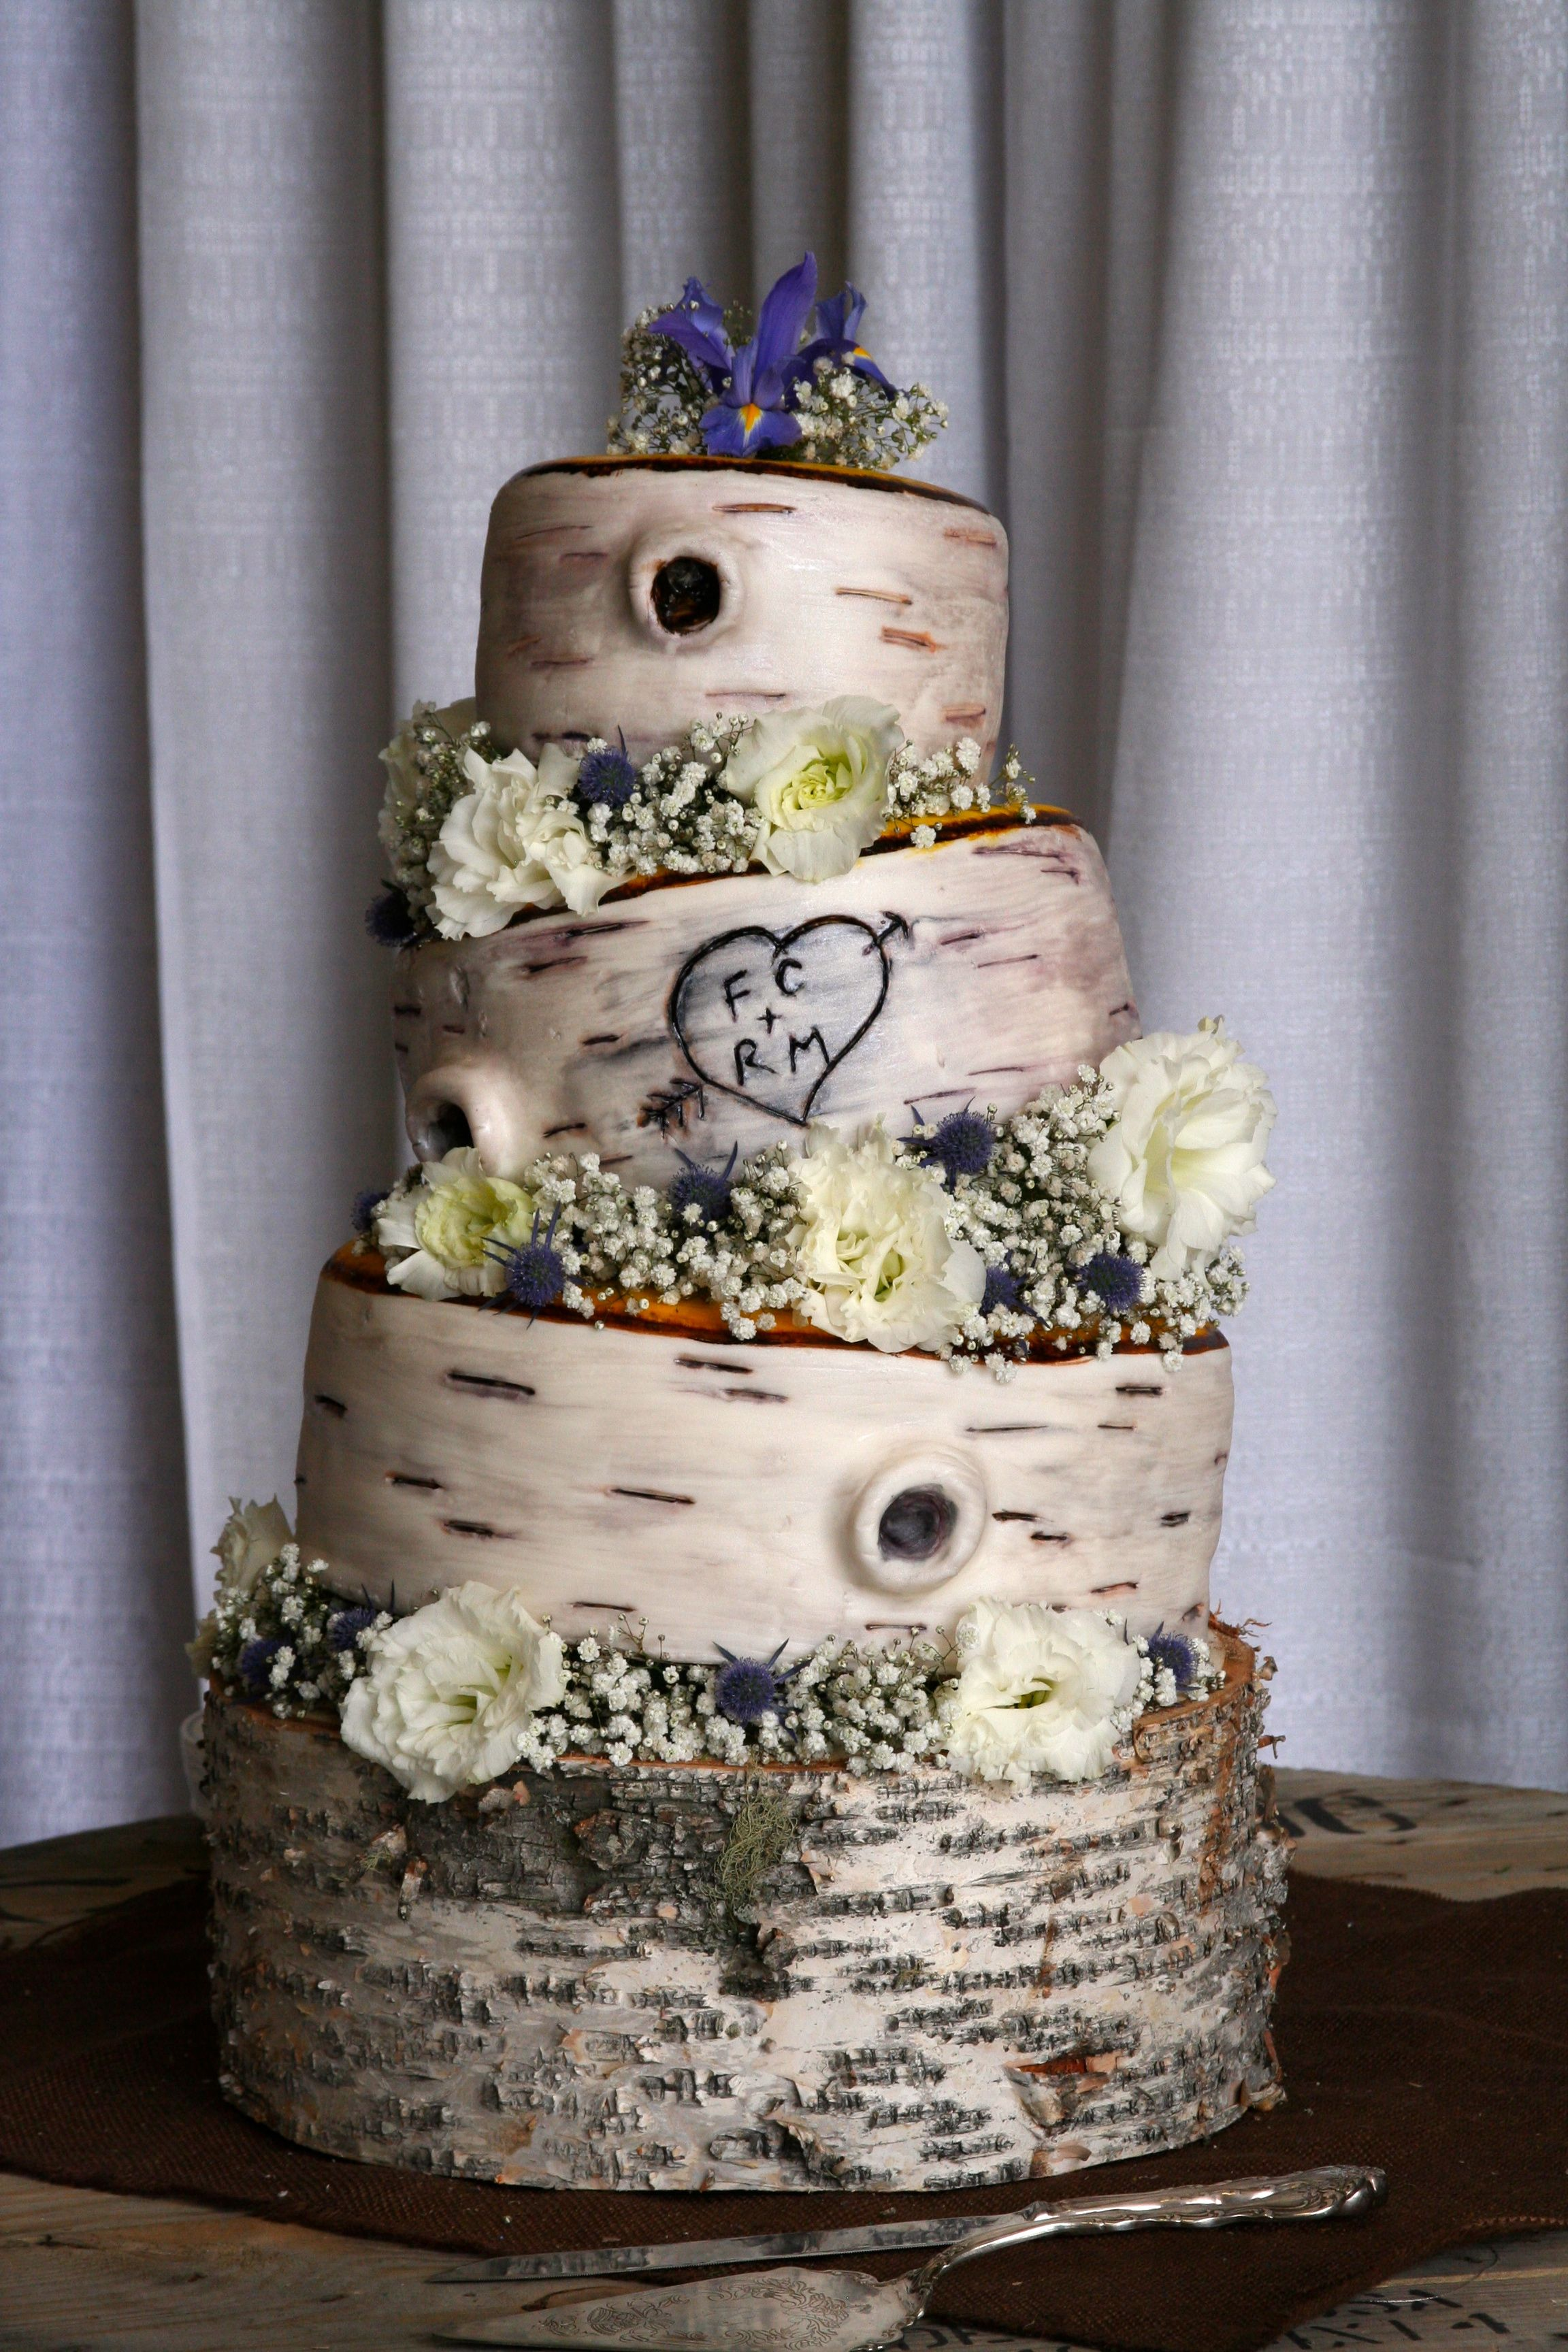 birch tree wedding cakes ardy cakes confections ardy robertson wedding ideas pinterest. Black Bedroom Furniture Sets. Home Design Ideas